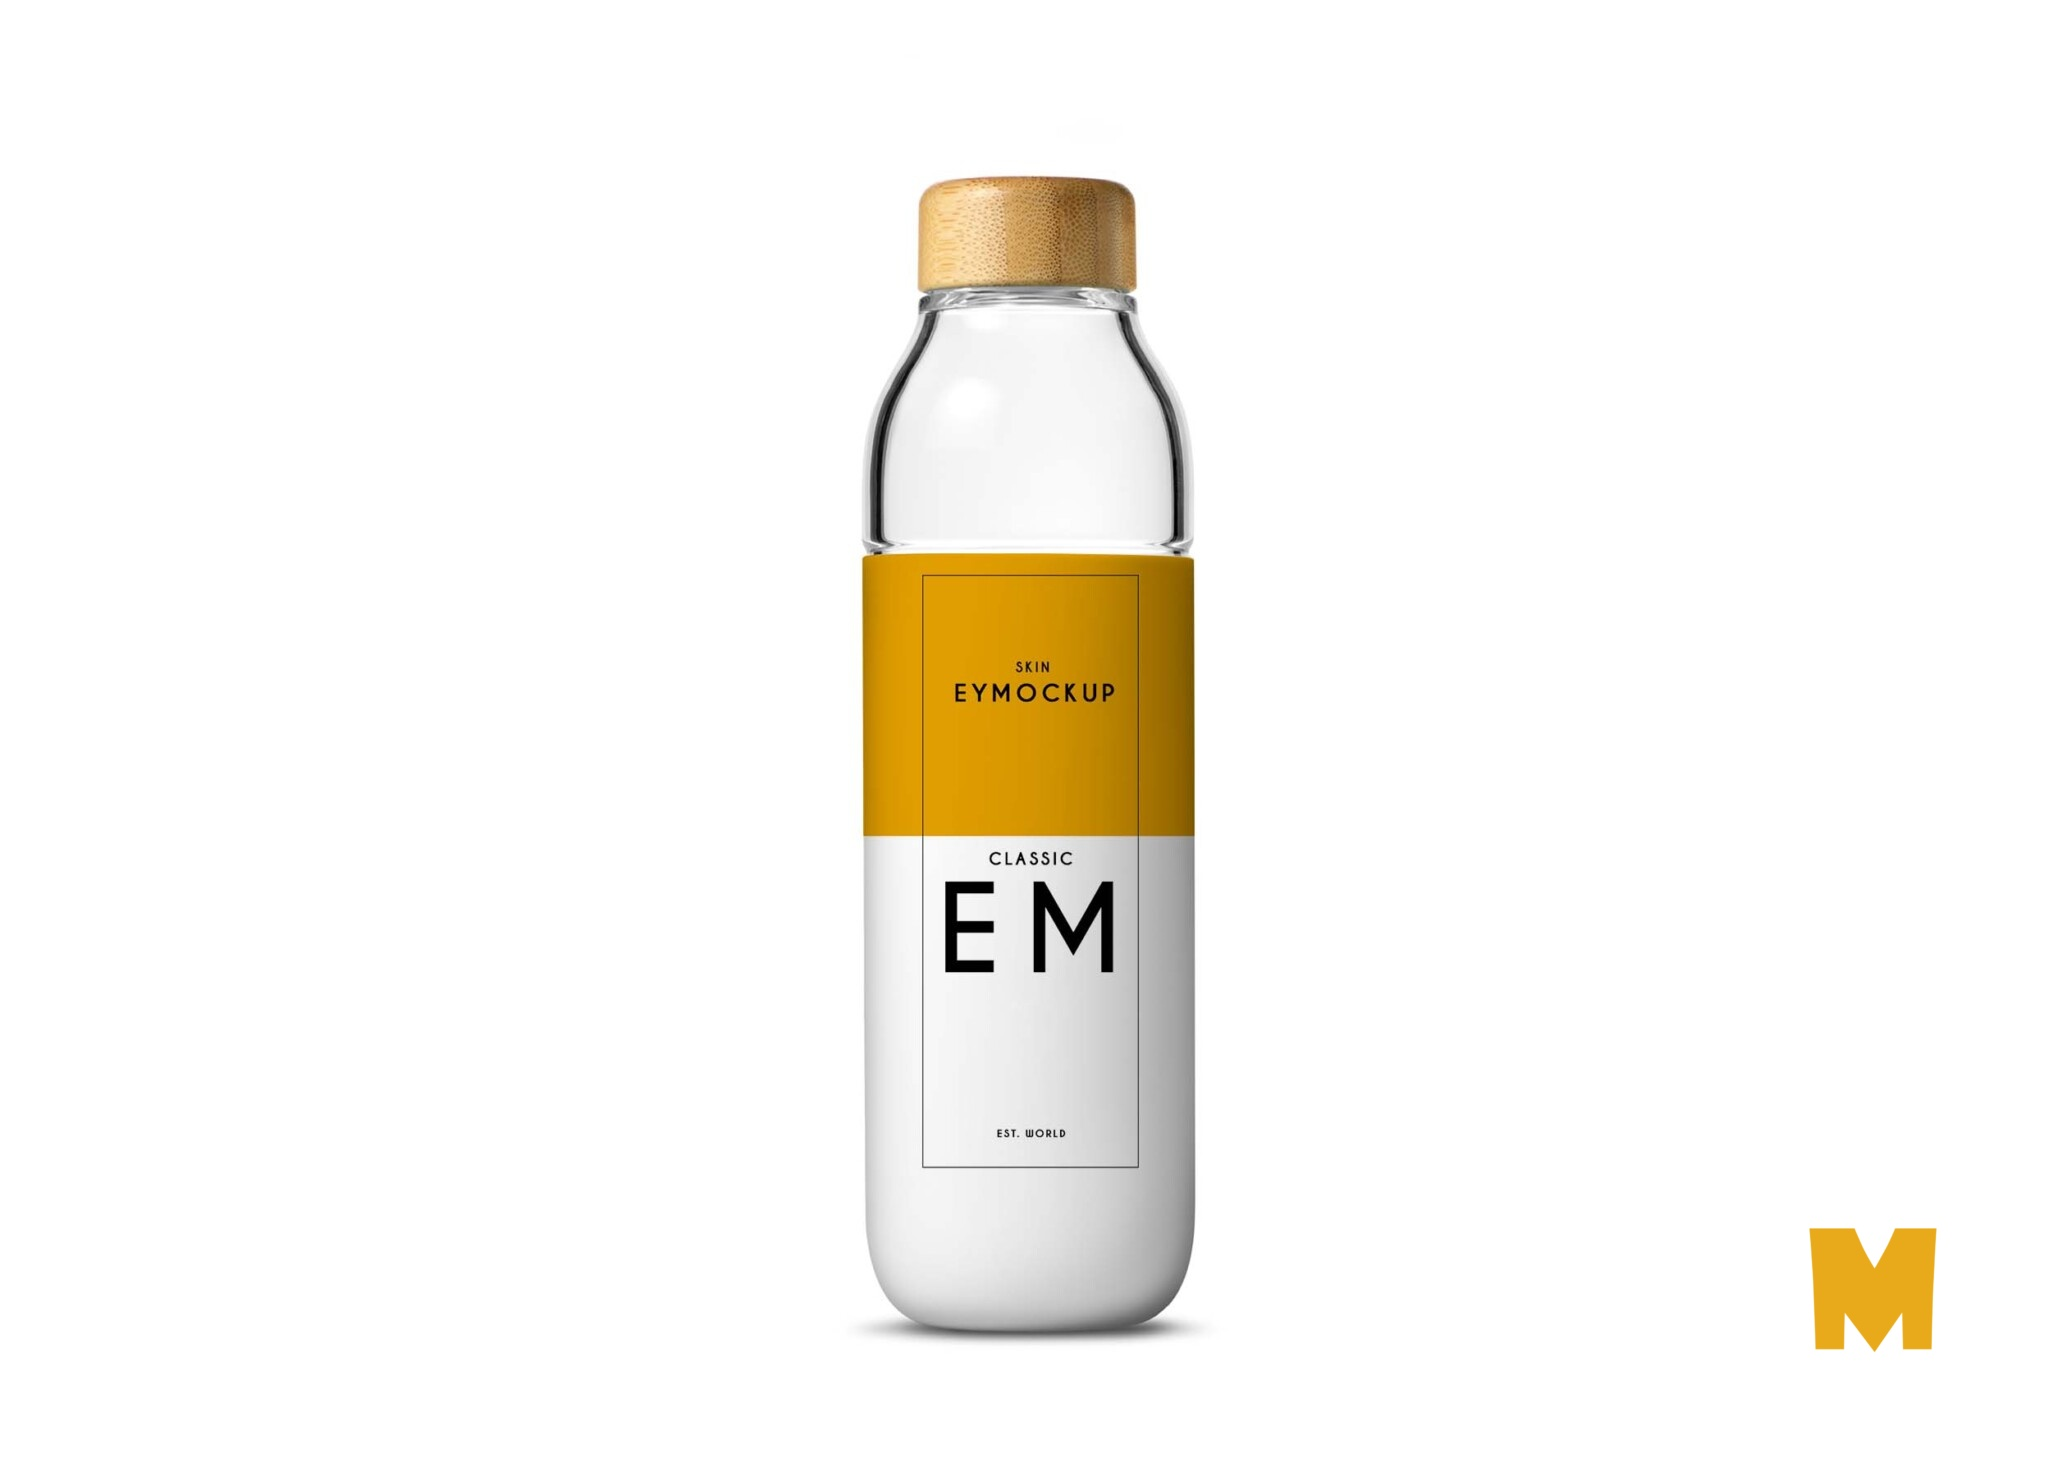 New Mineral Water Bottle Label Mockup